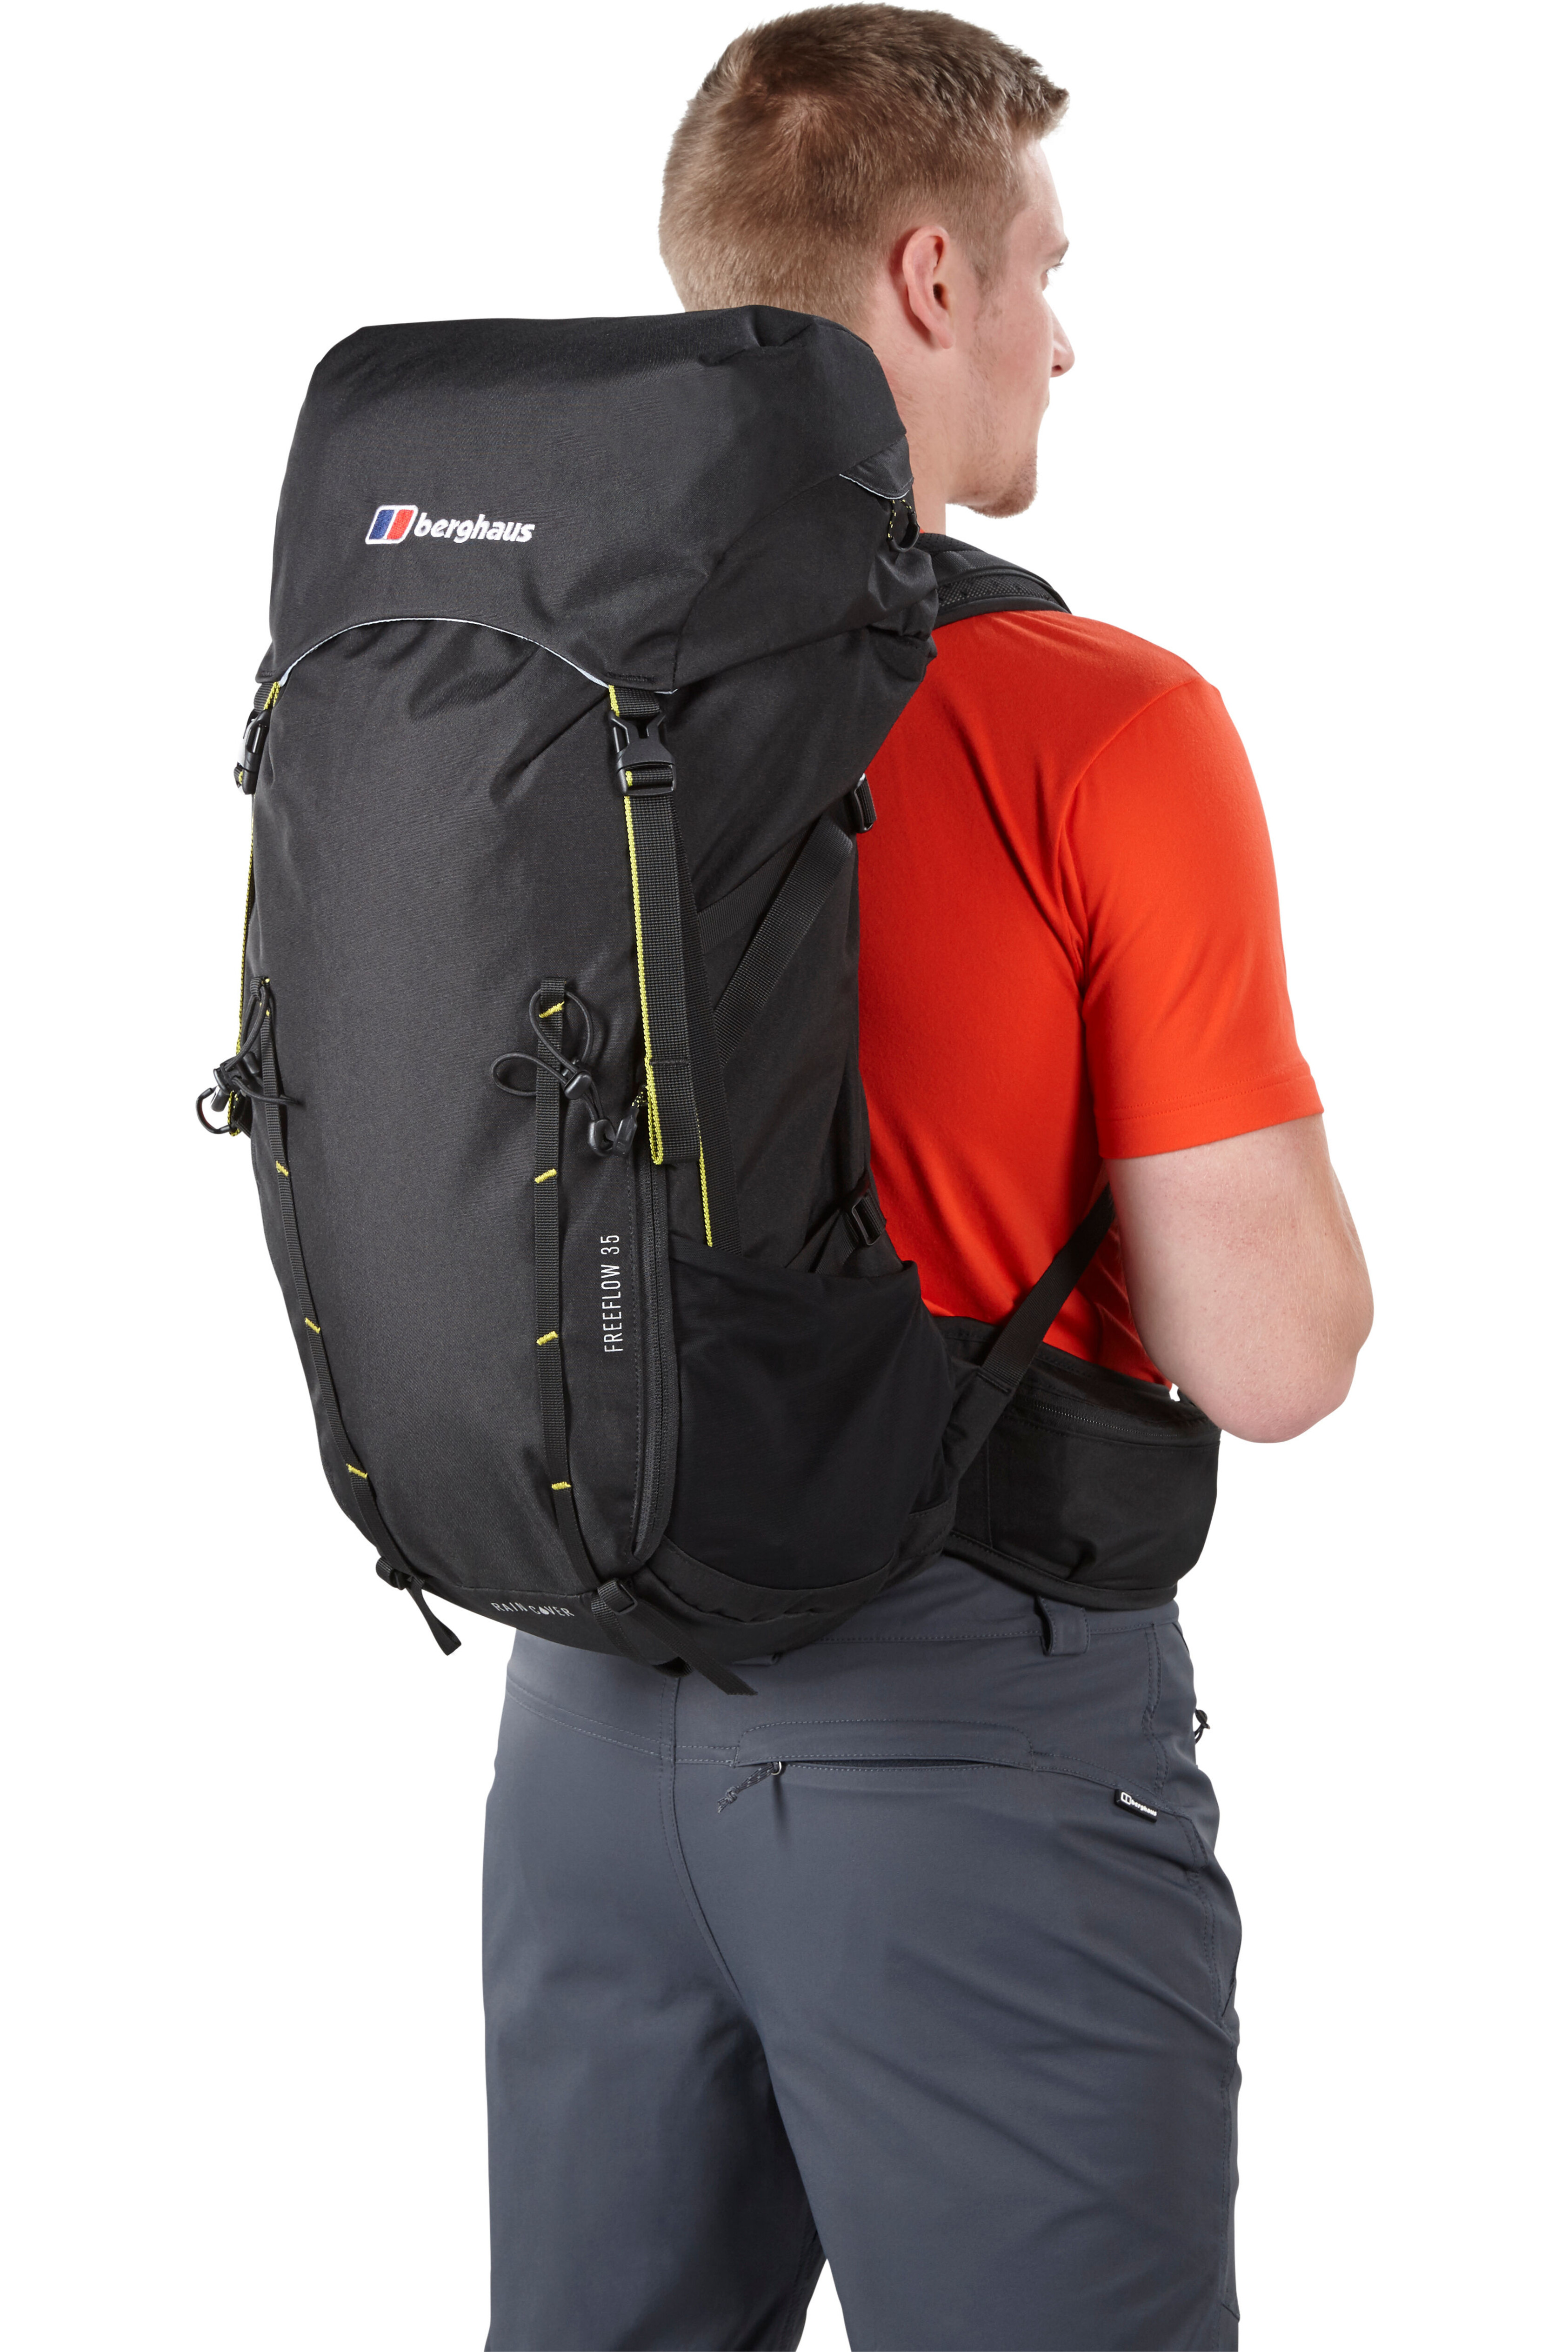 c57771e69cc6 Berghaus Freeflow 35 Backpack black at Addnature.co.uk